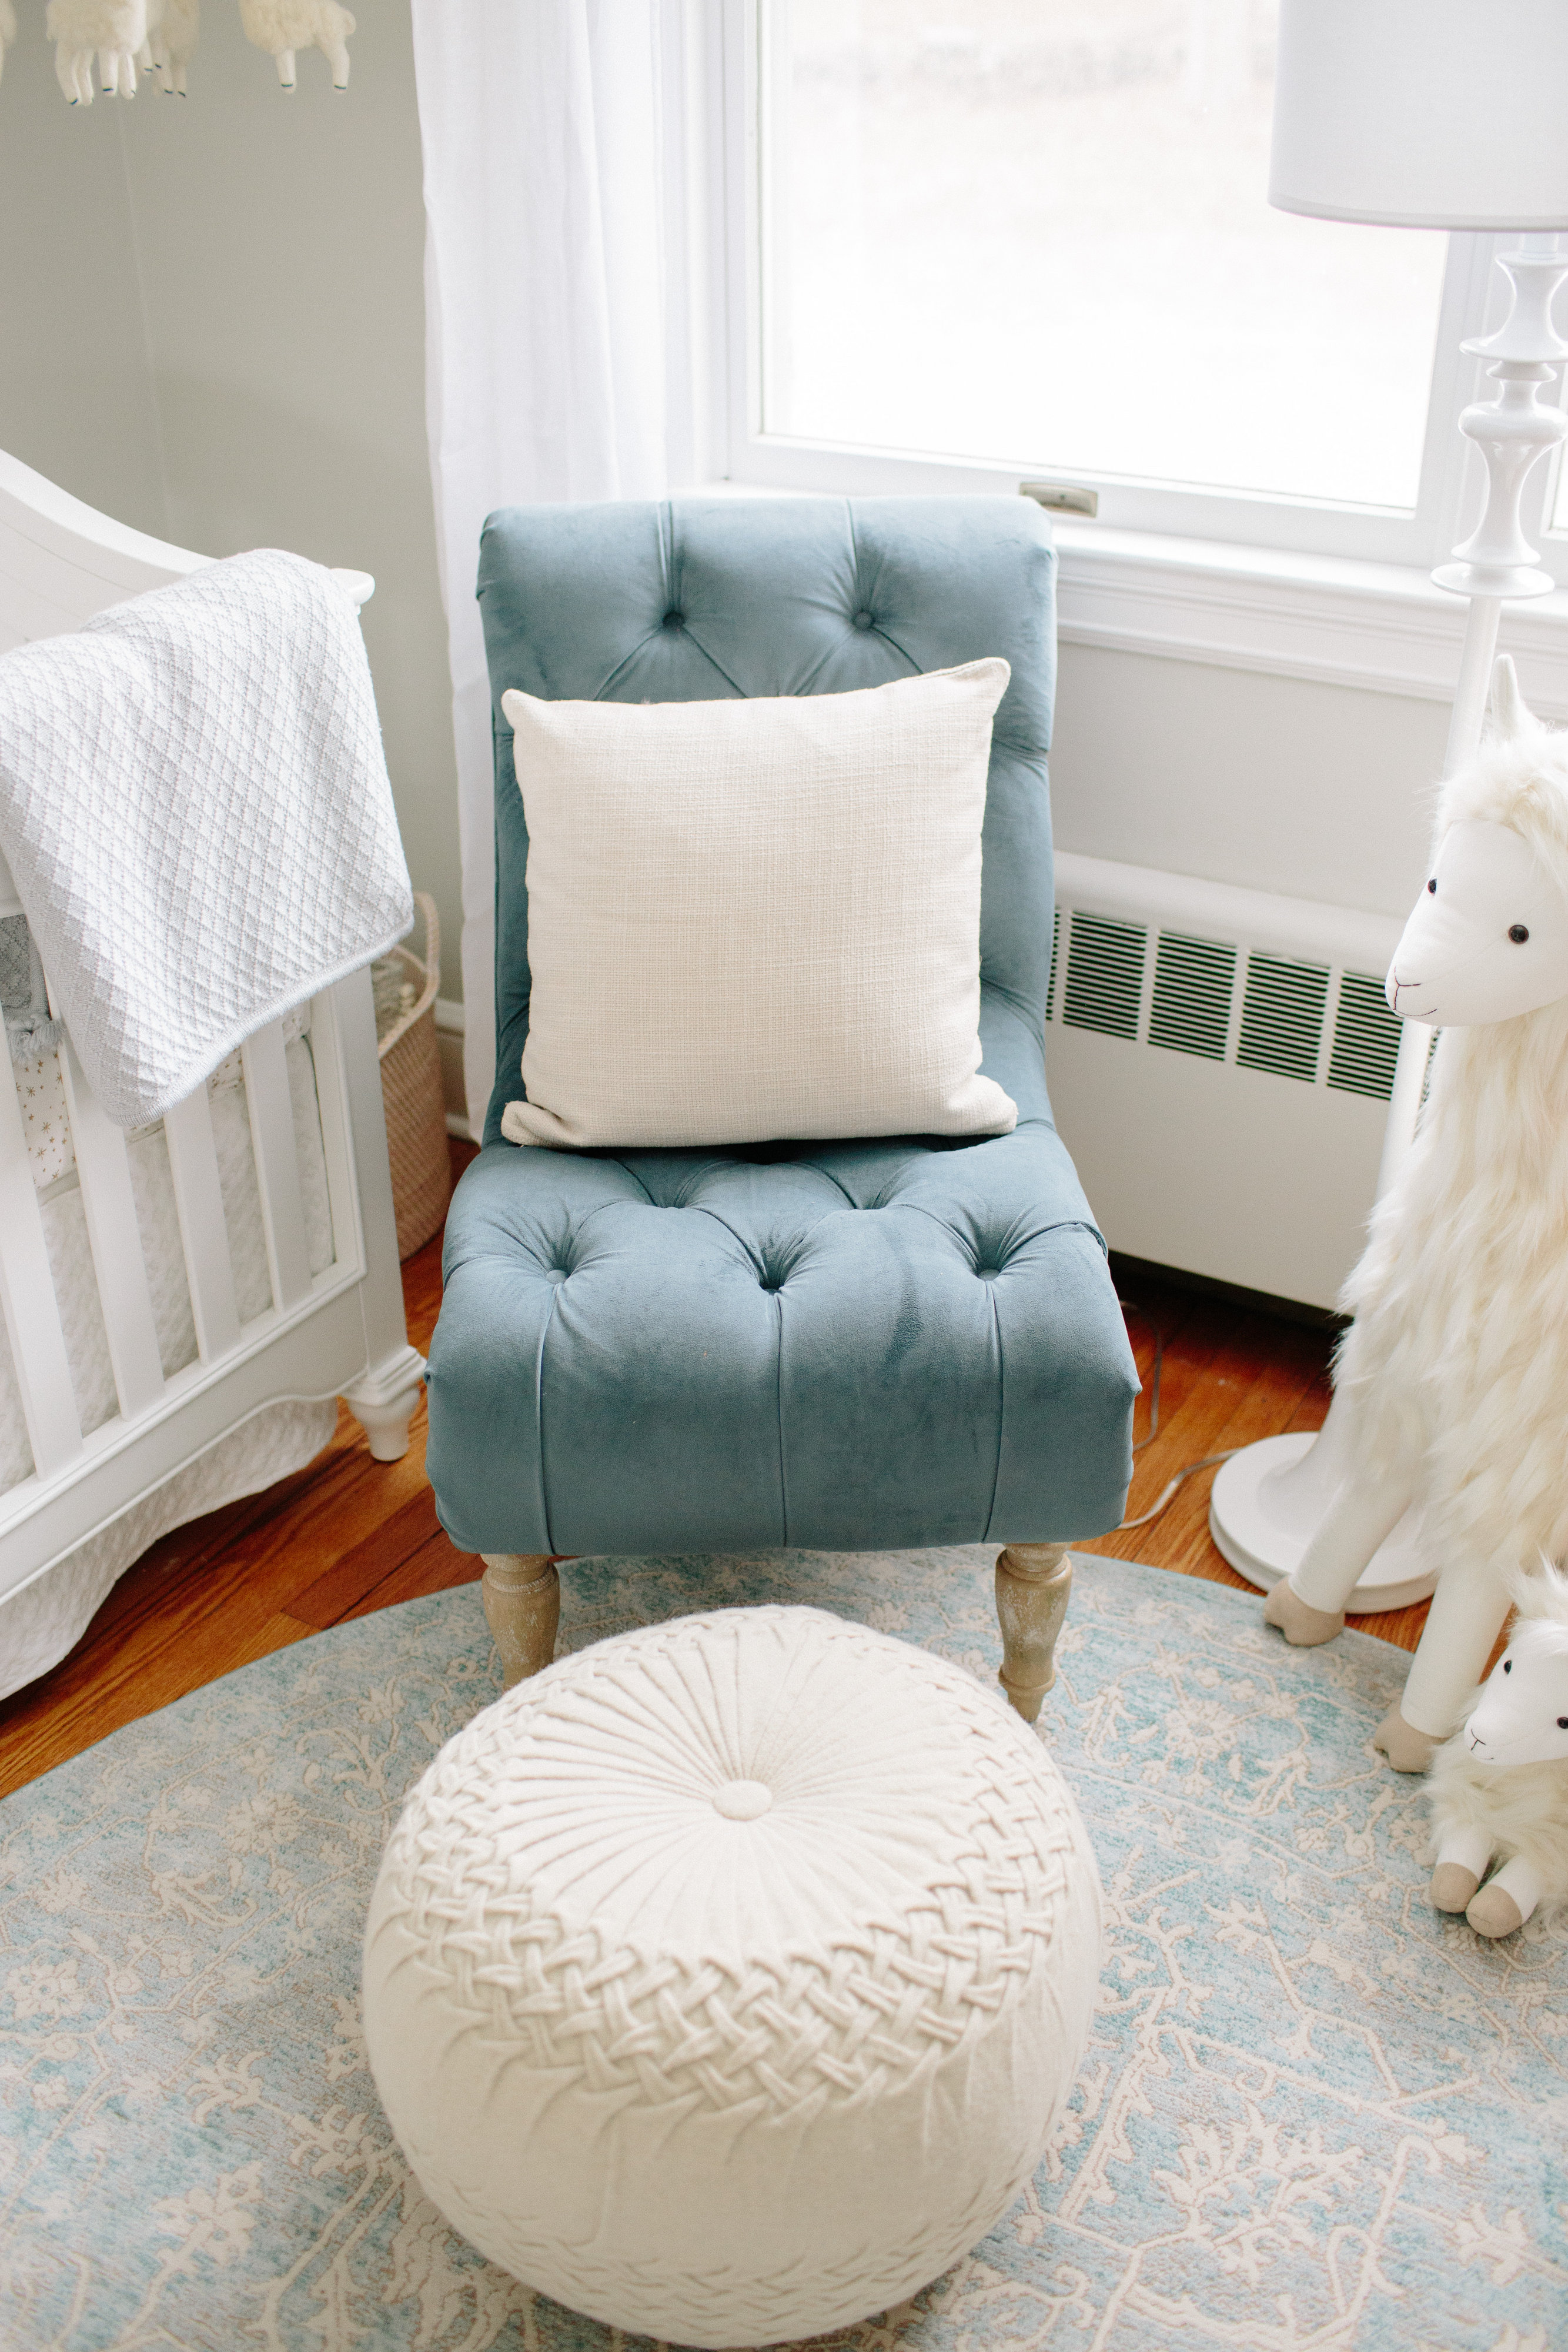 Are you looking for a gender neutral nursery for your new bundle of joy? Check out our gender neutral nursery tour for great ideas and inspiration.